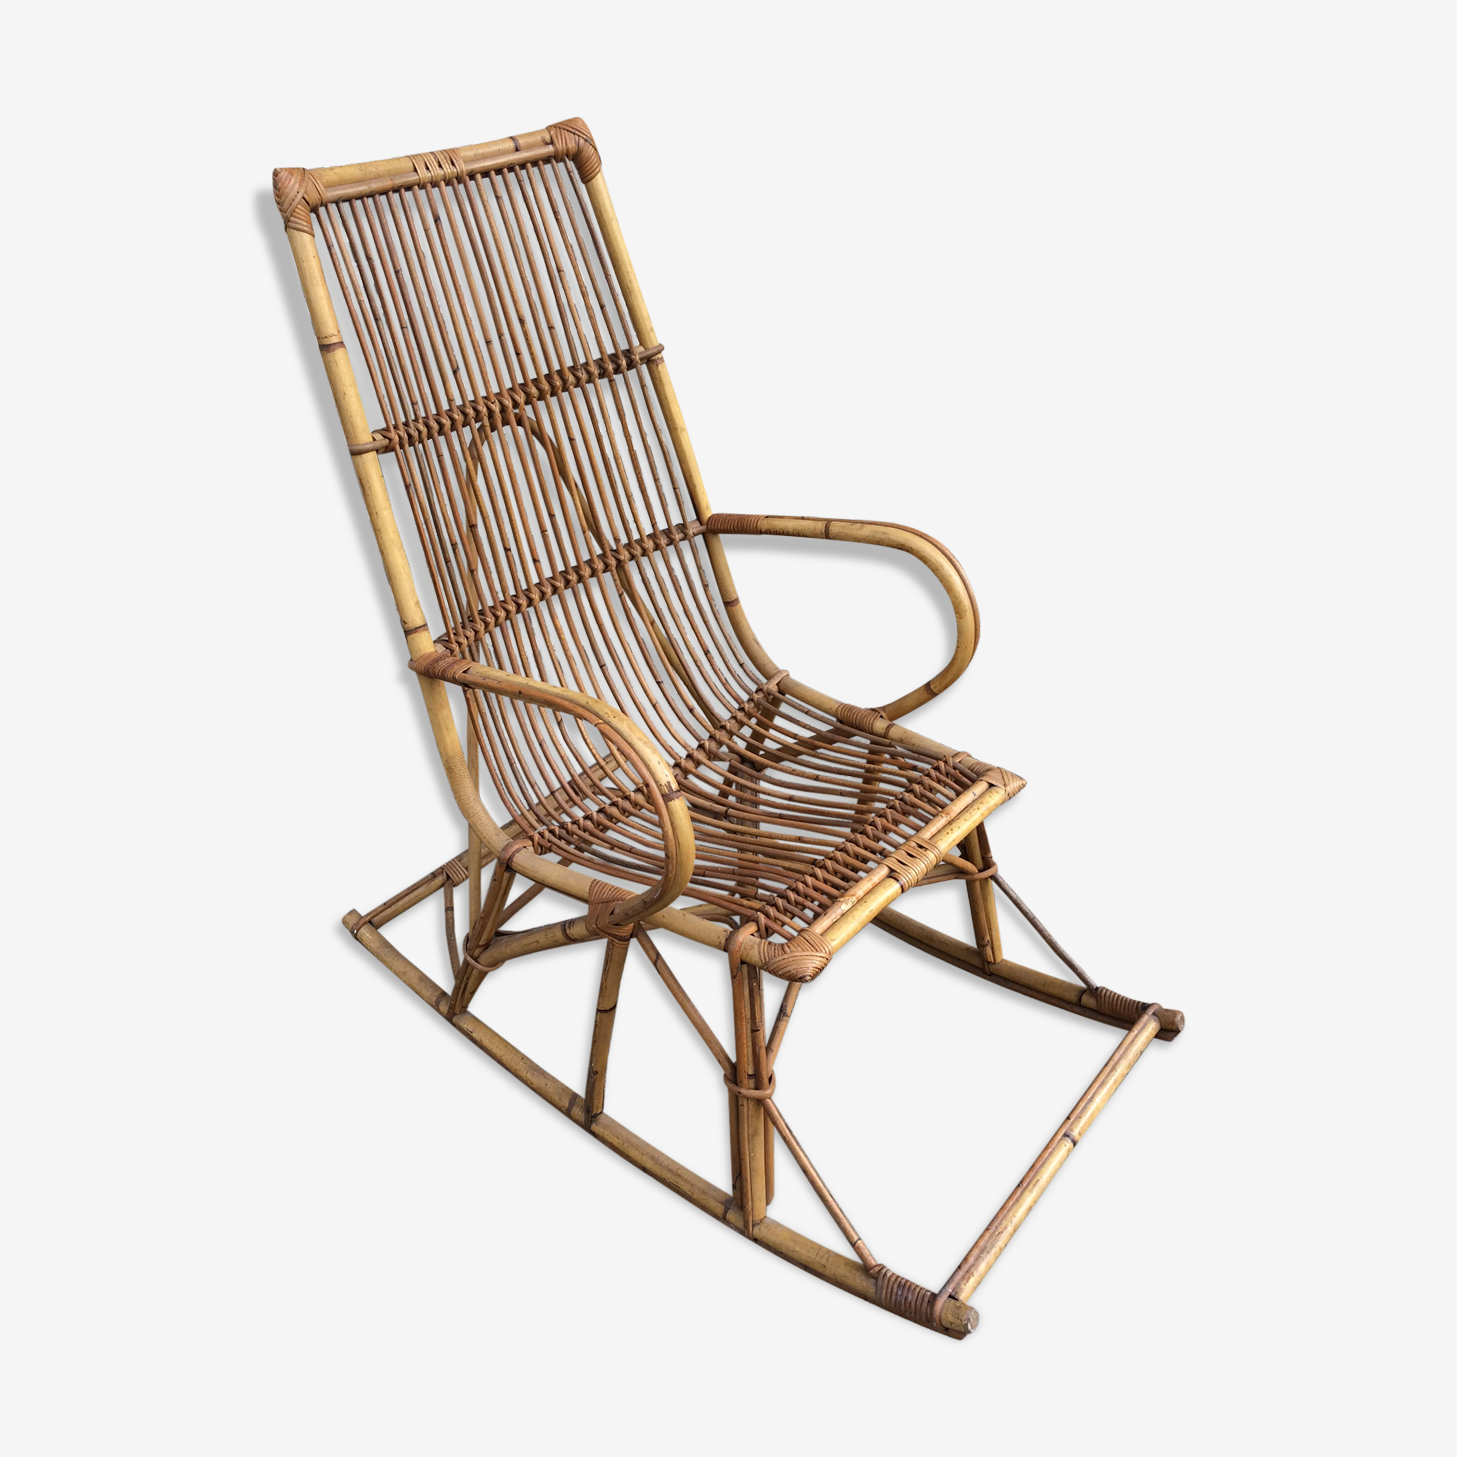 Rocking-chair en rotin